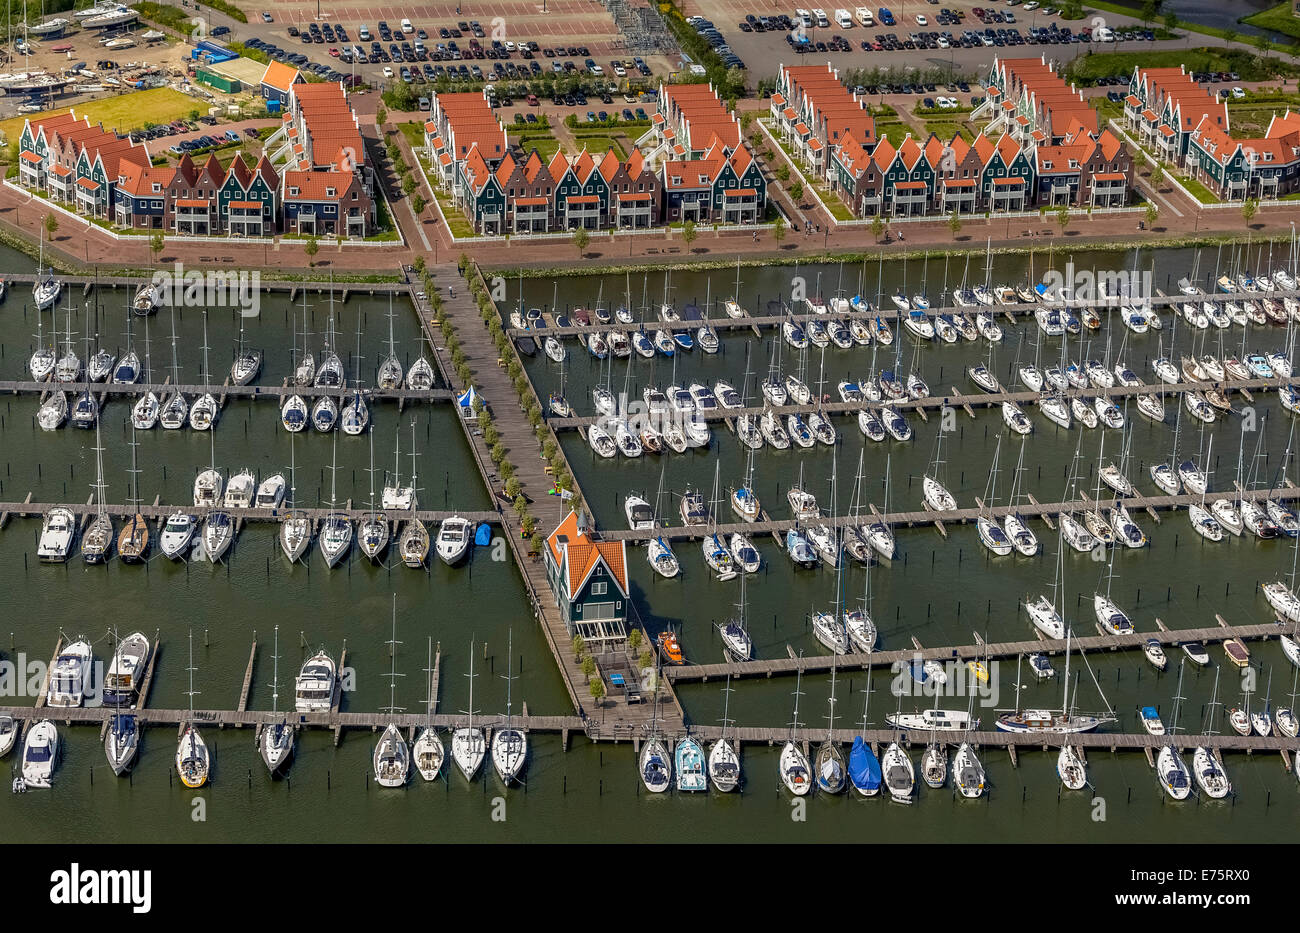 Aerial view, harbour on Markermeer lake, Volendam, Province of North Holland, Netherlands Stock Photo